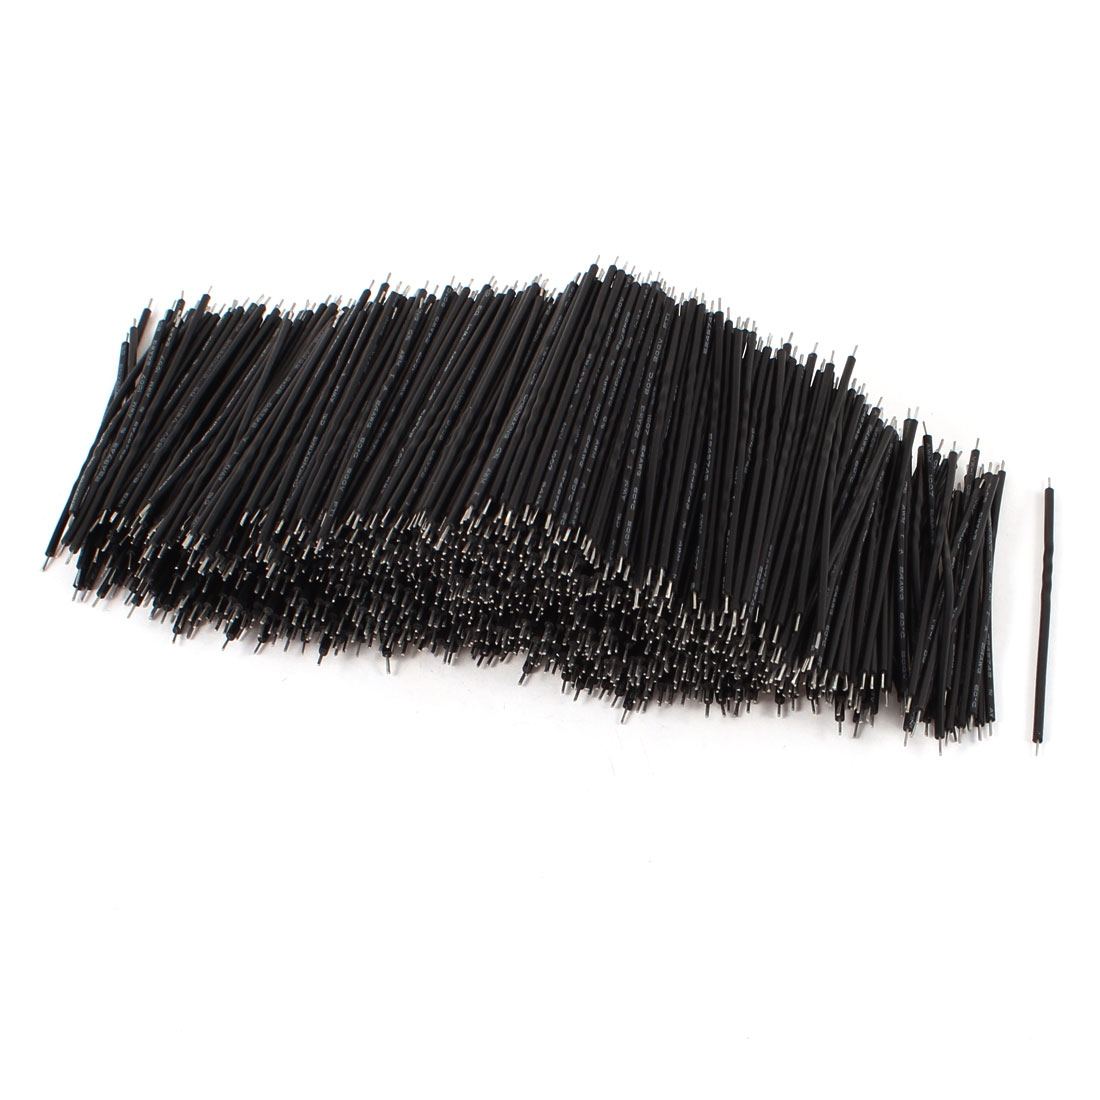 1000 Pcs Black PVC Tin Plated Copper 0.4x60mm 26AWG Wire Brushless Motor Cable